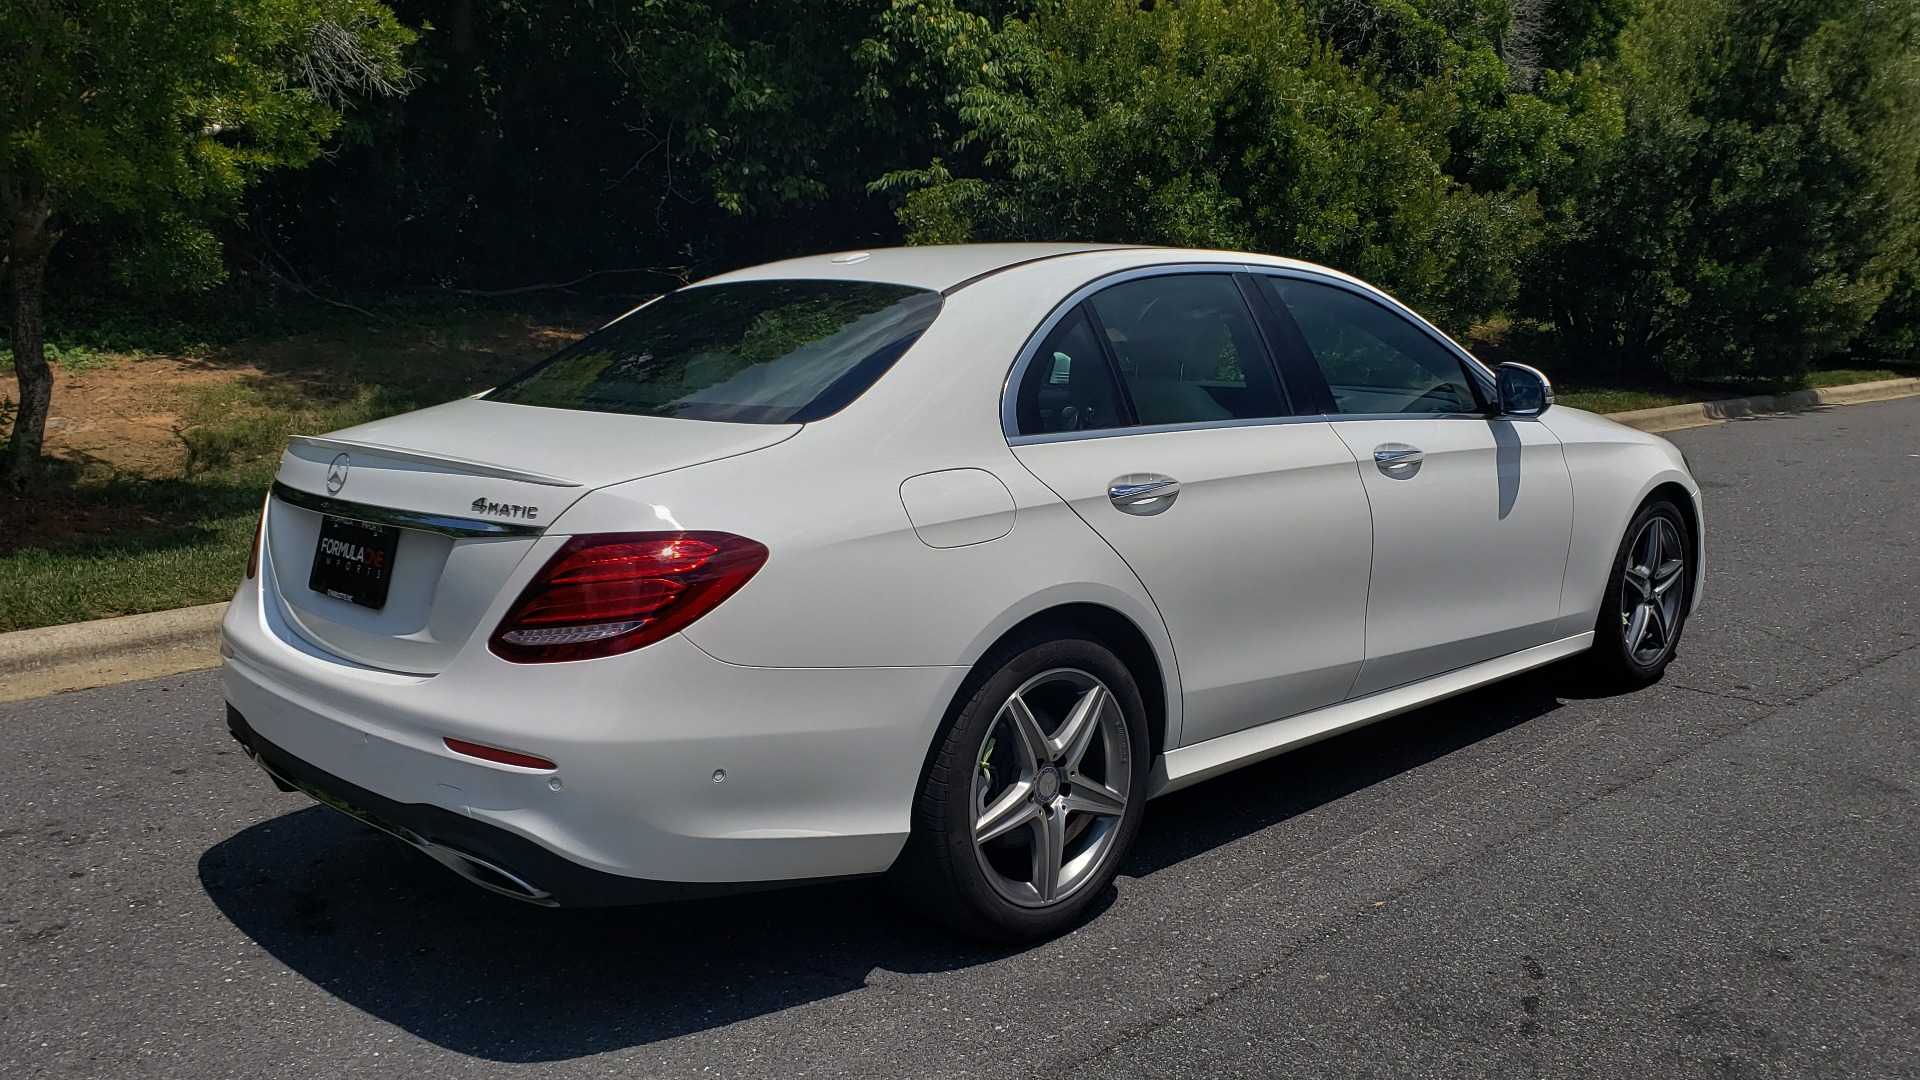 Used 2017 Mercedes-Benz E-CLASS E 300 PREMIUM / SPORT / NAV / SUNROOF / HTD STS / BSM / REARVIEW for sale $27,995 at Formula Imports in Charlotte NC 28227 6